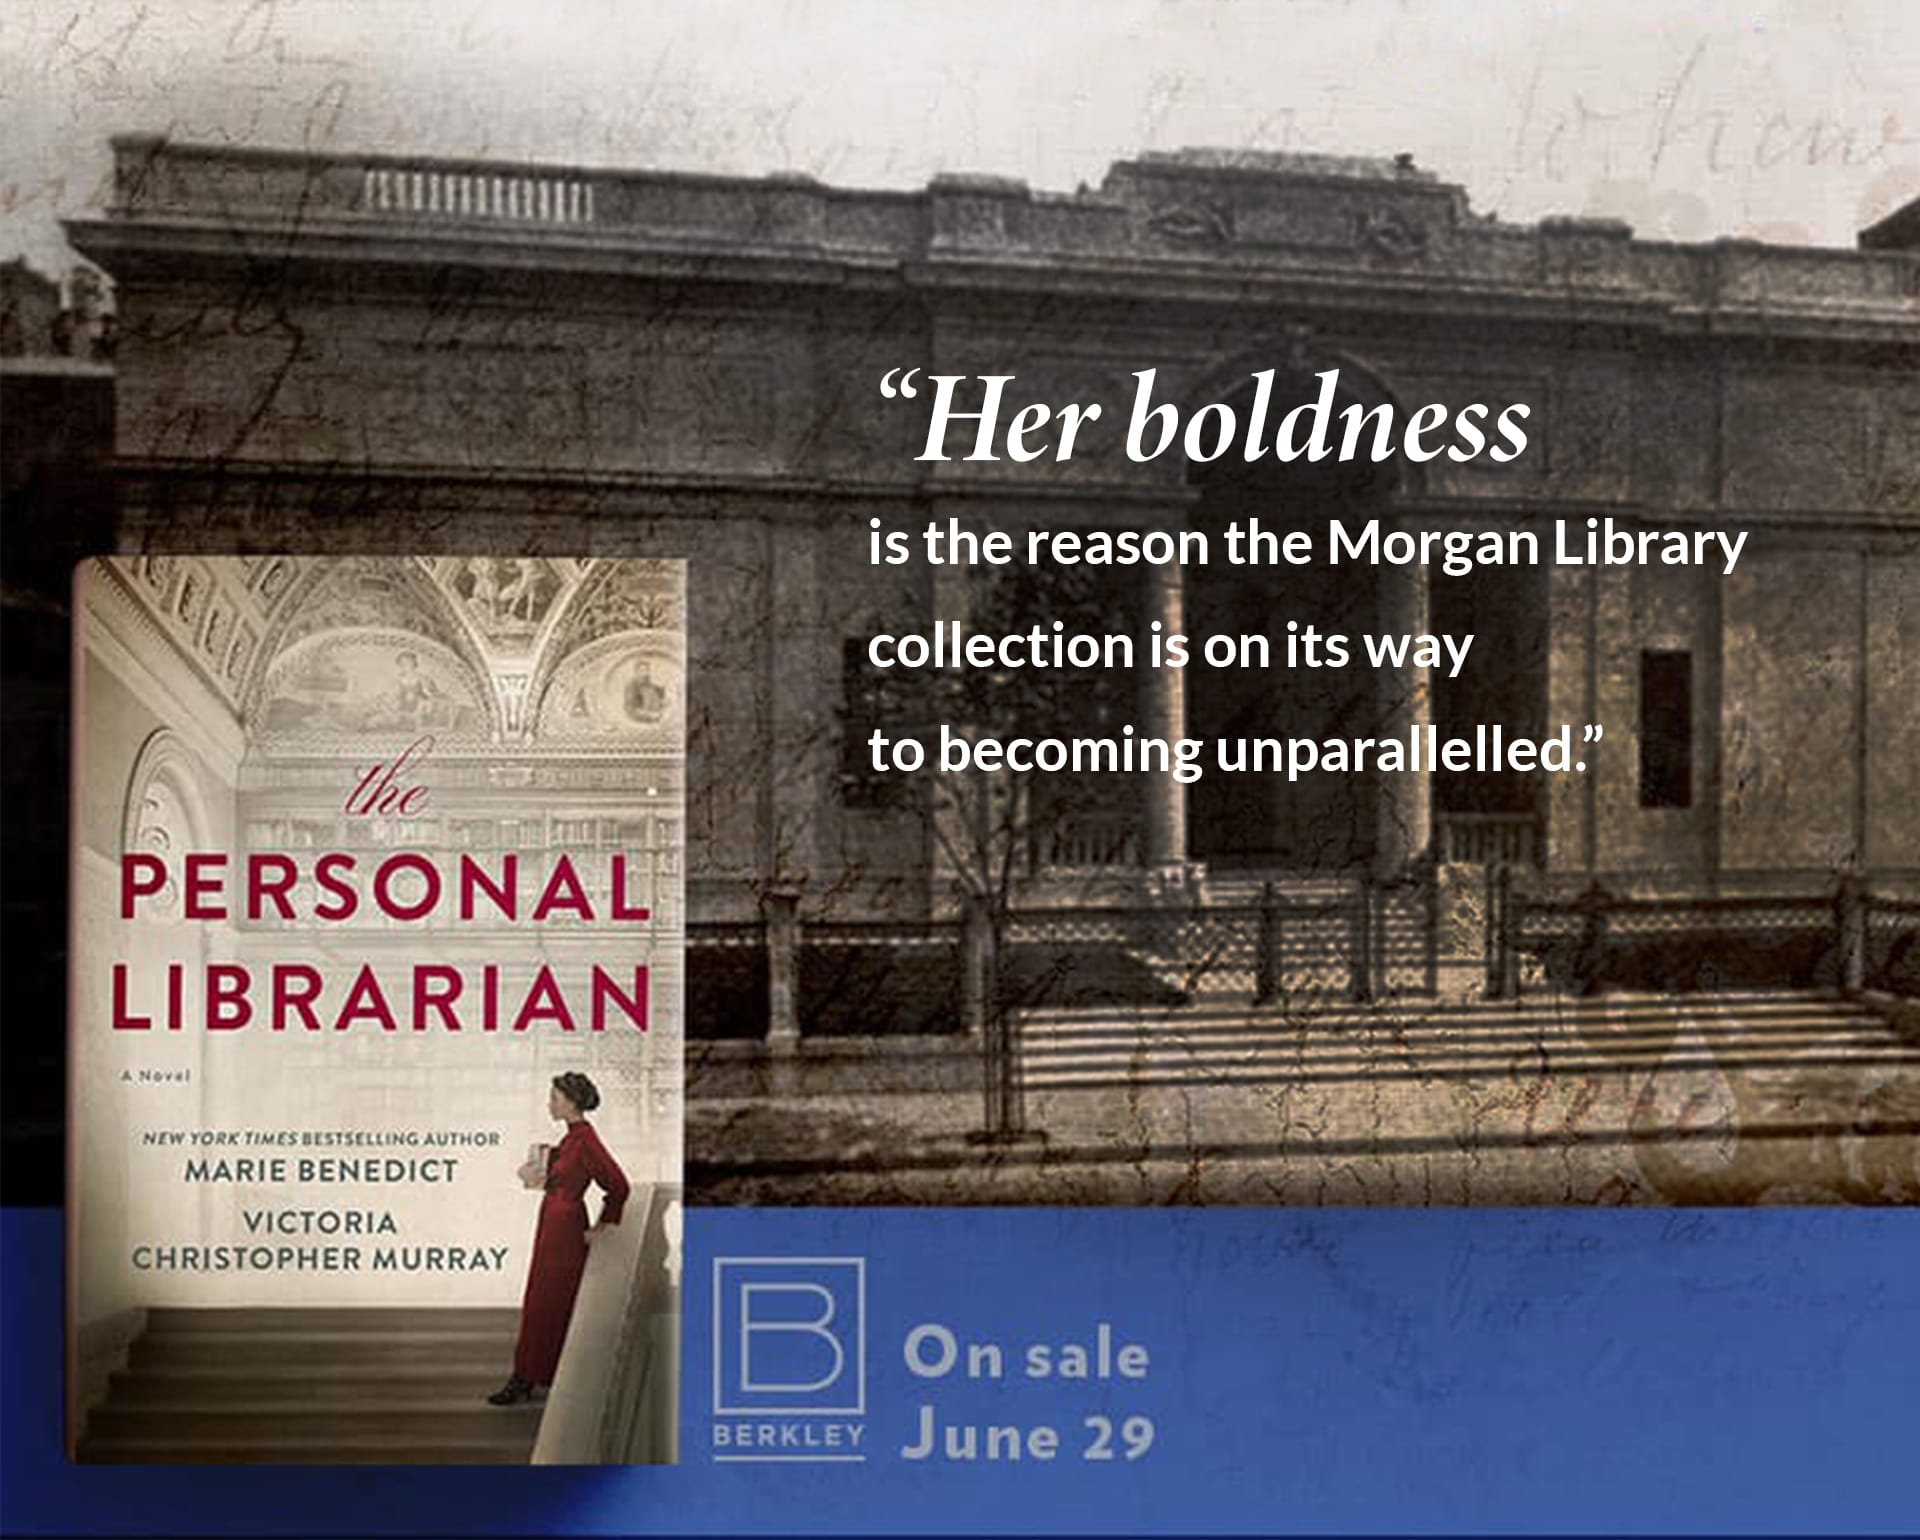 The Personal Librarian On Sale on June 29